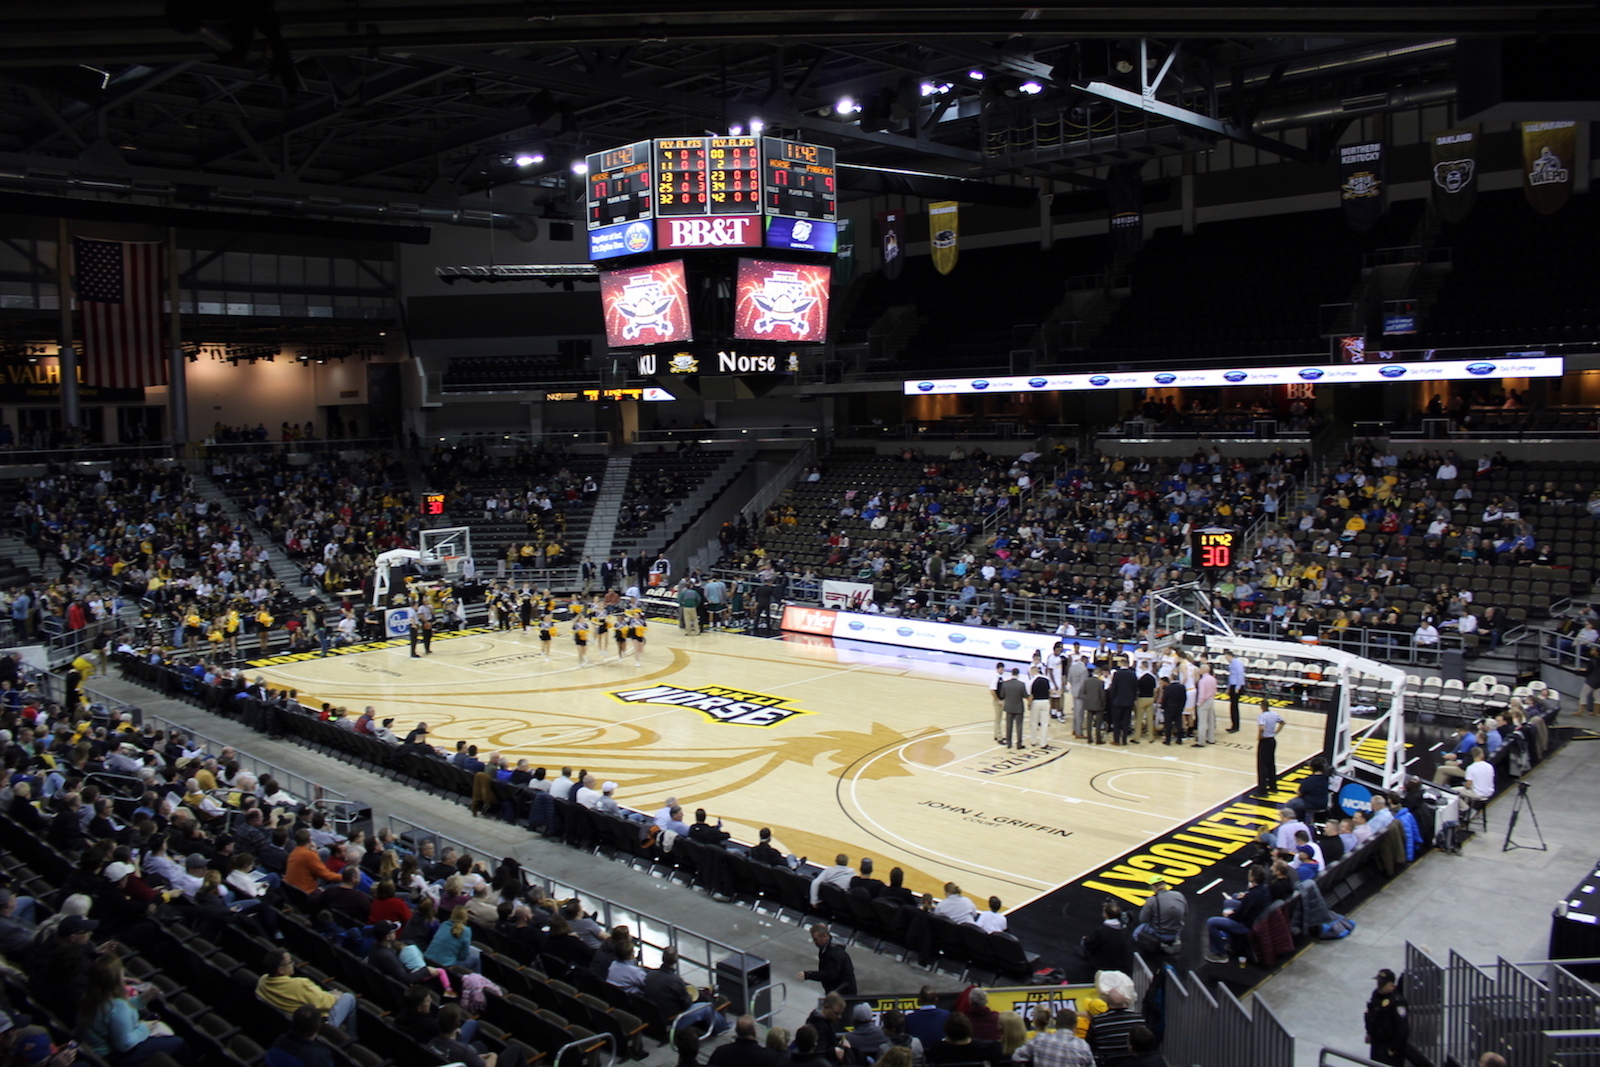 BB&T Arena, home of the NKU Norse basketball.